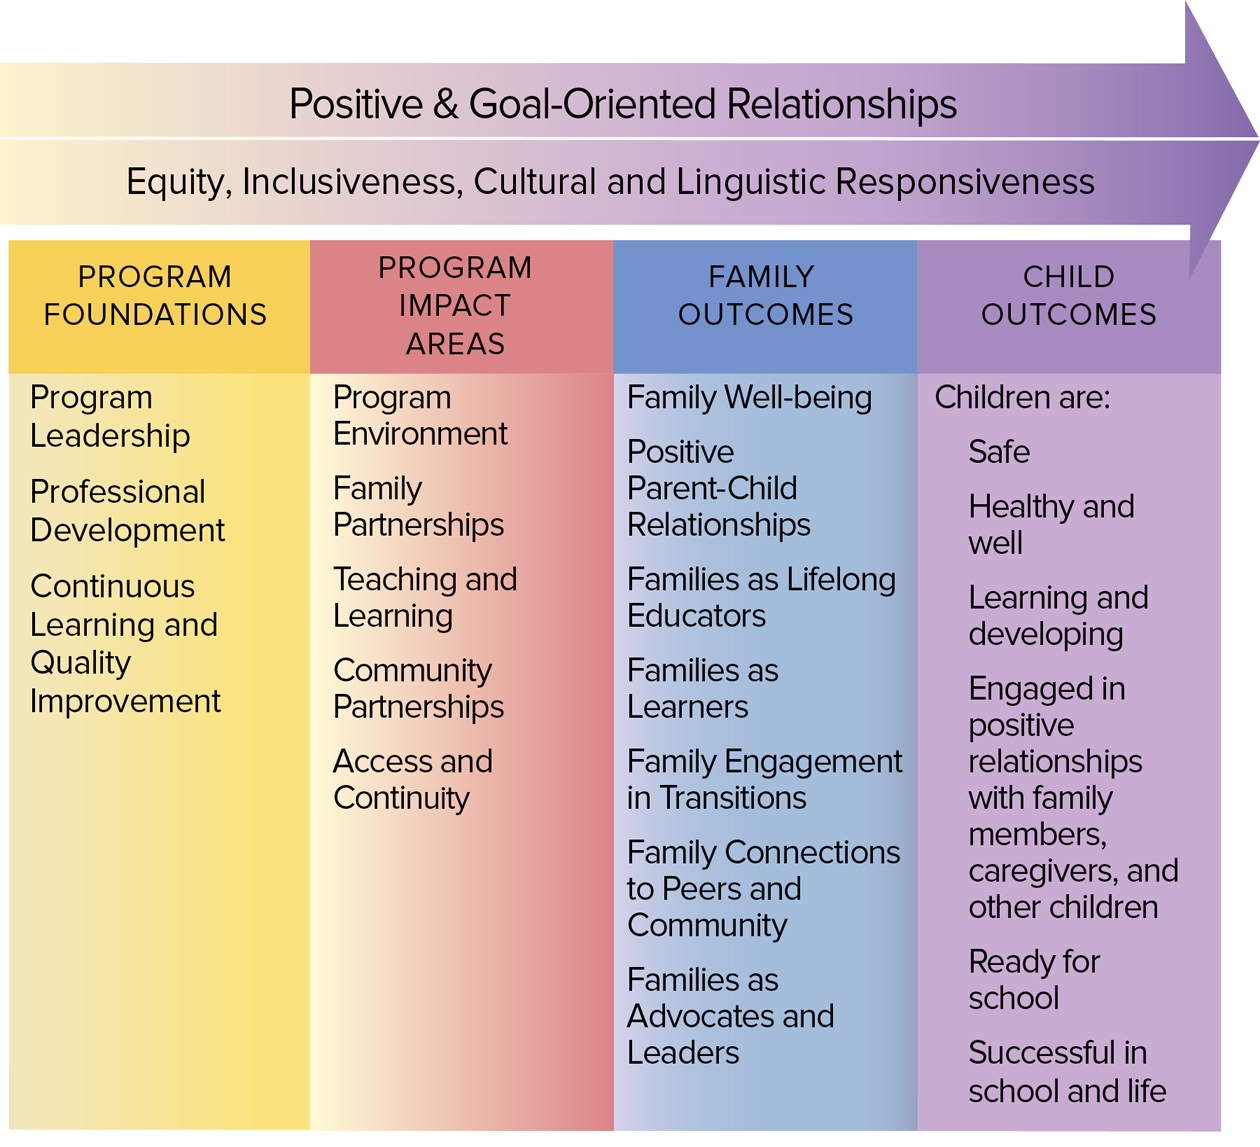 graphic - Positive & Goal Oriented Relationships